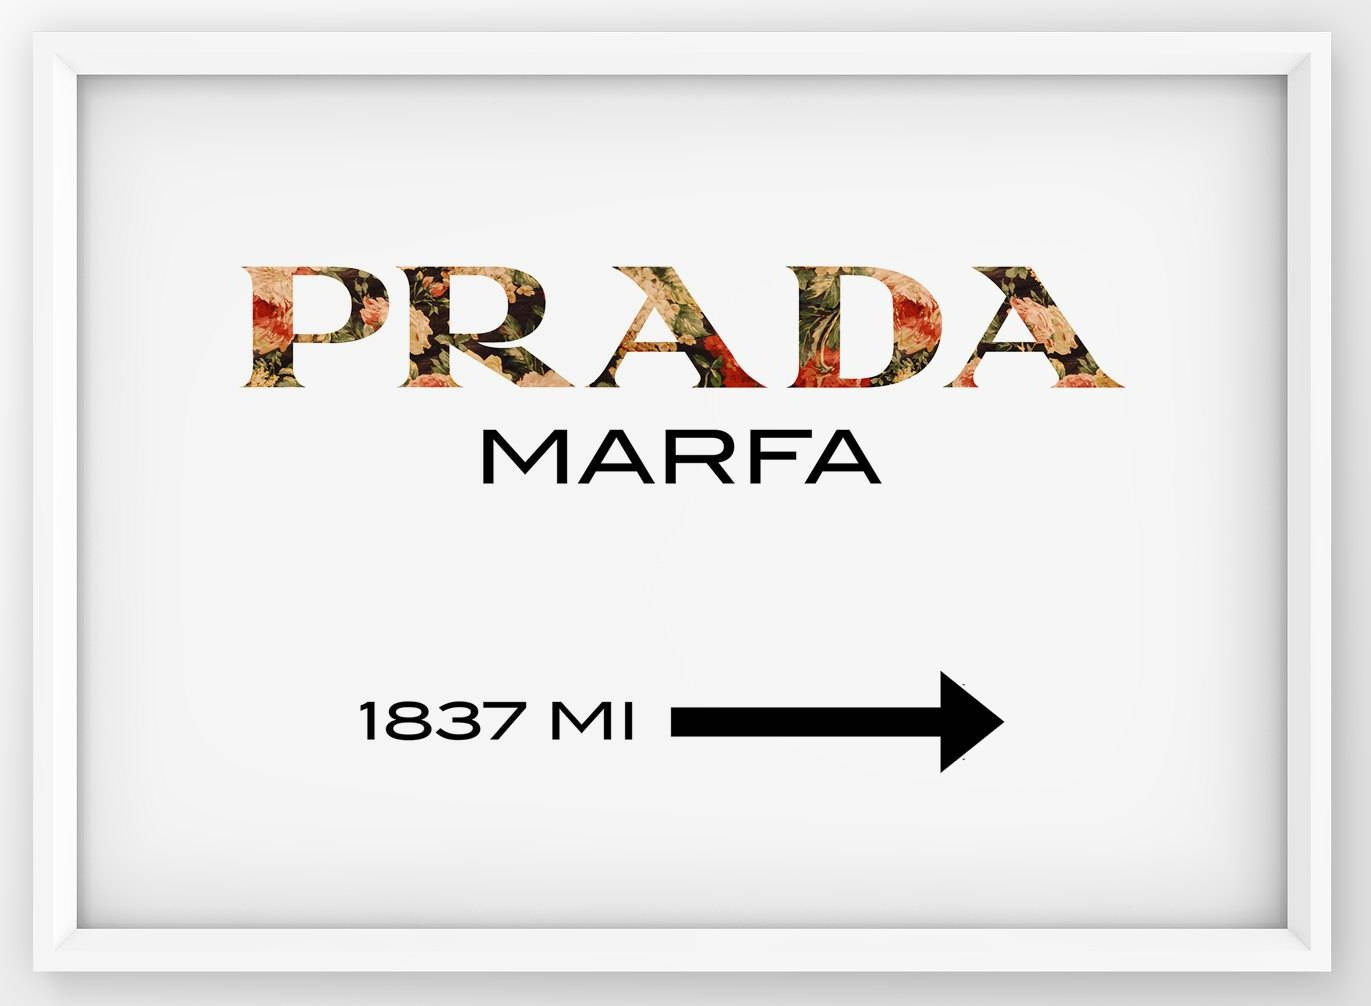 Floral Prada Marfa Sign Prada Marfa Print Prada Logo Poster With Regard To Most Recent Prada Wall Art (View 12 of 25)